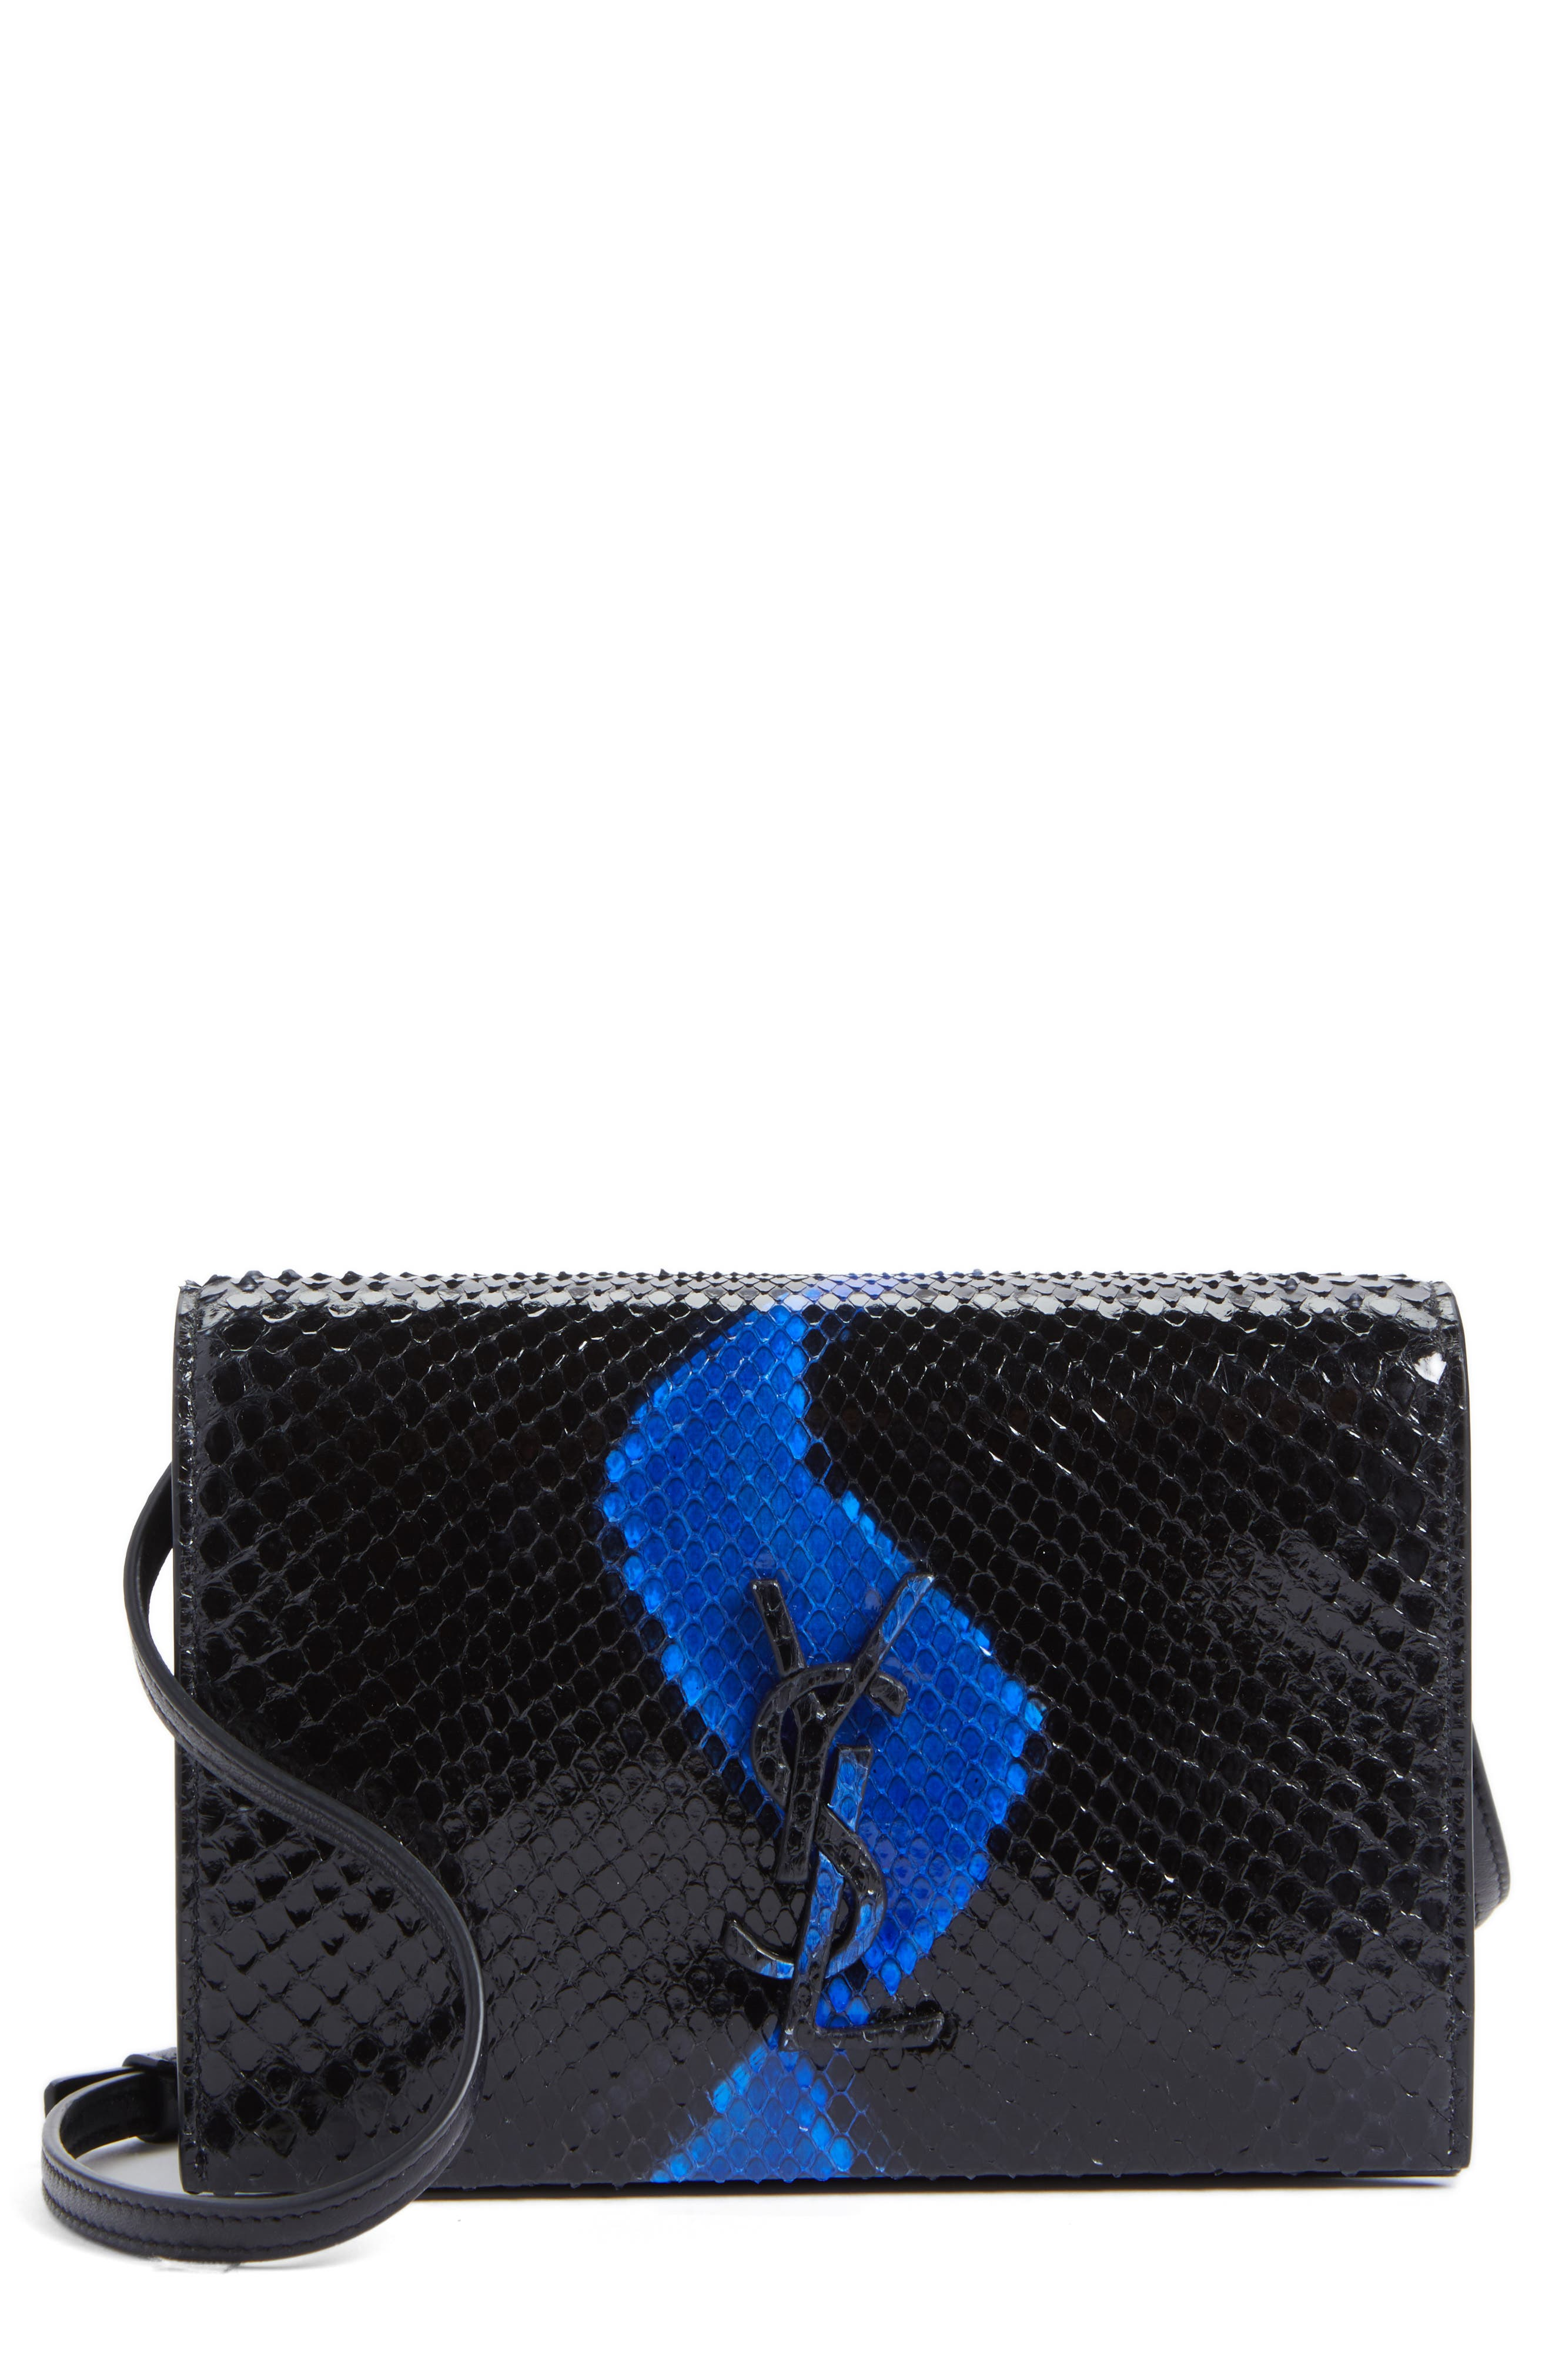 Saint Laurent Toy Kate Genuine Snakeskin Bag